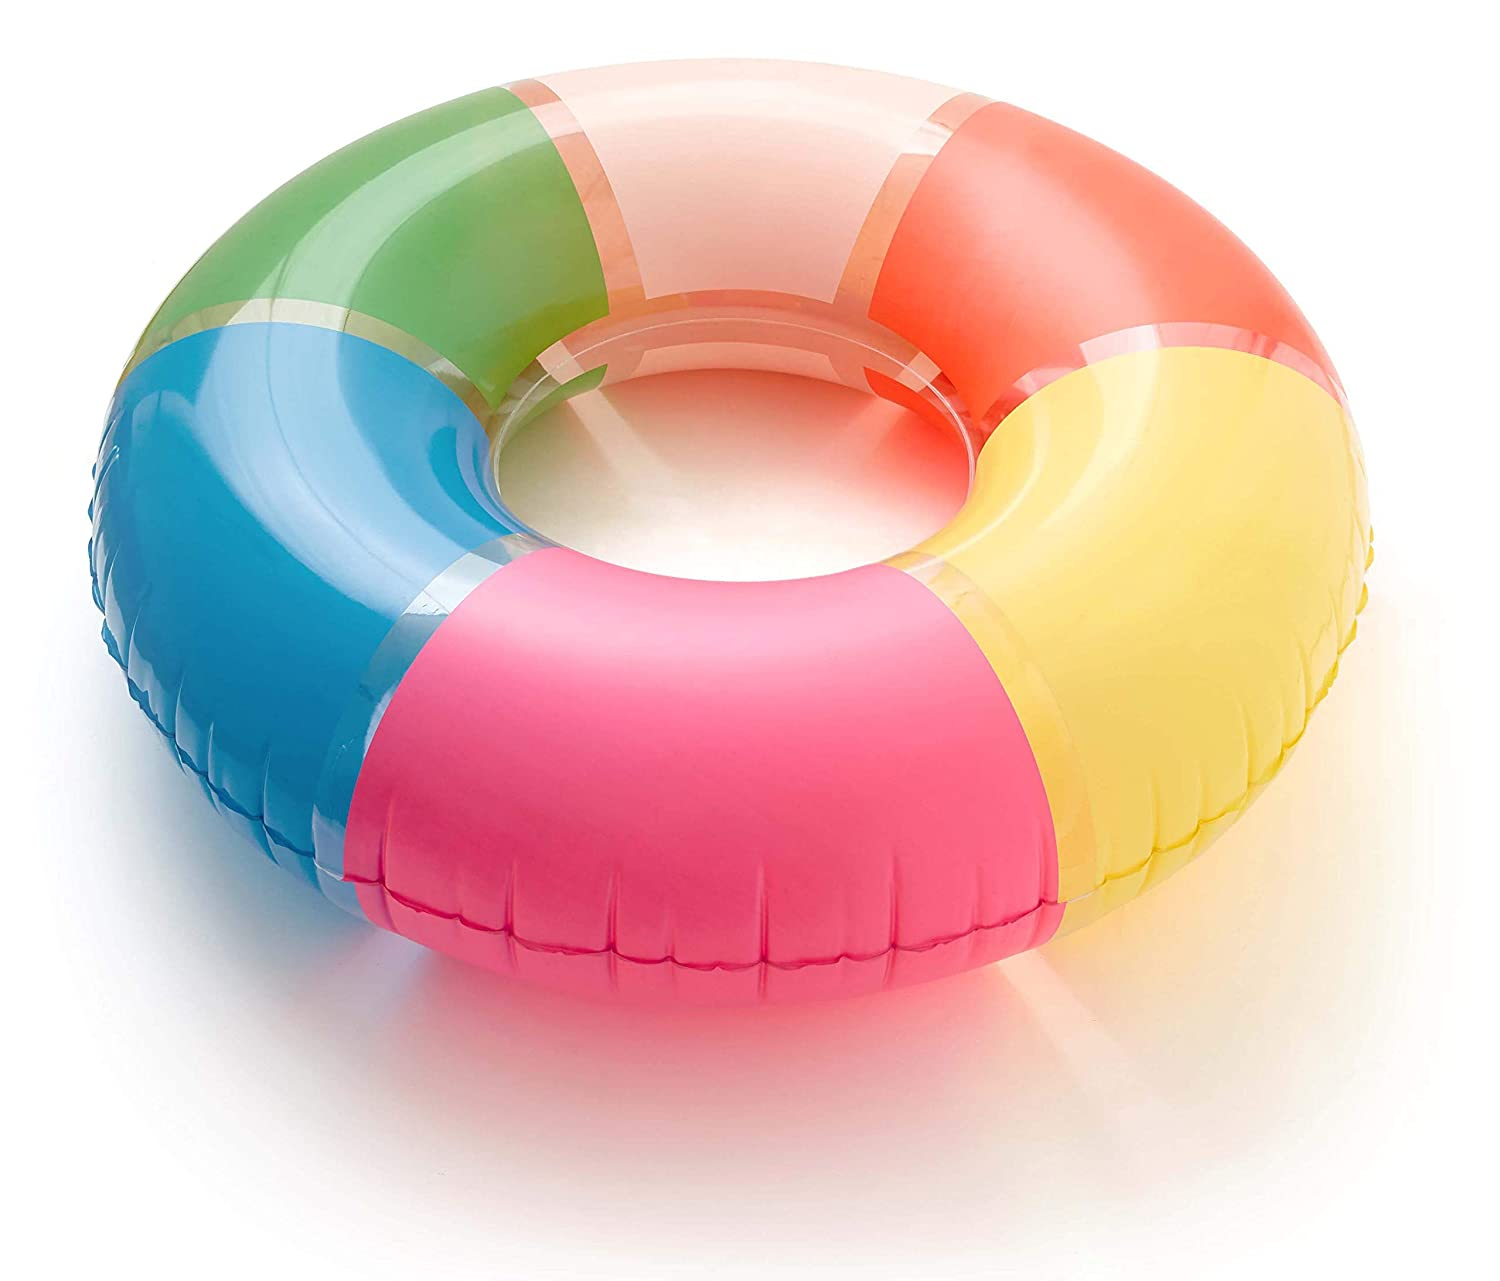 Amazon.com: ban.do Float On - Flotador para piscina, talla ...